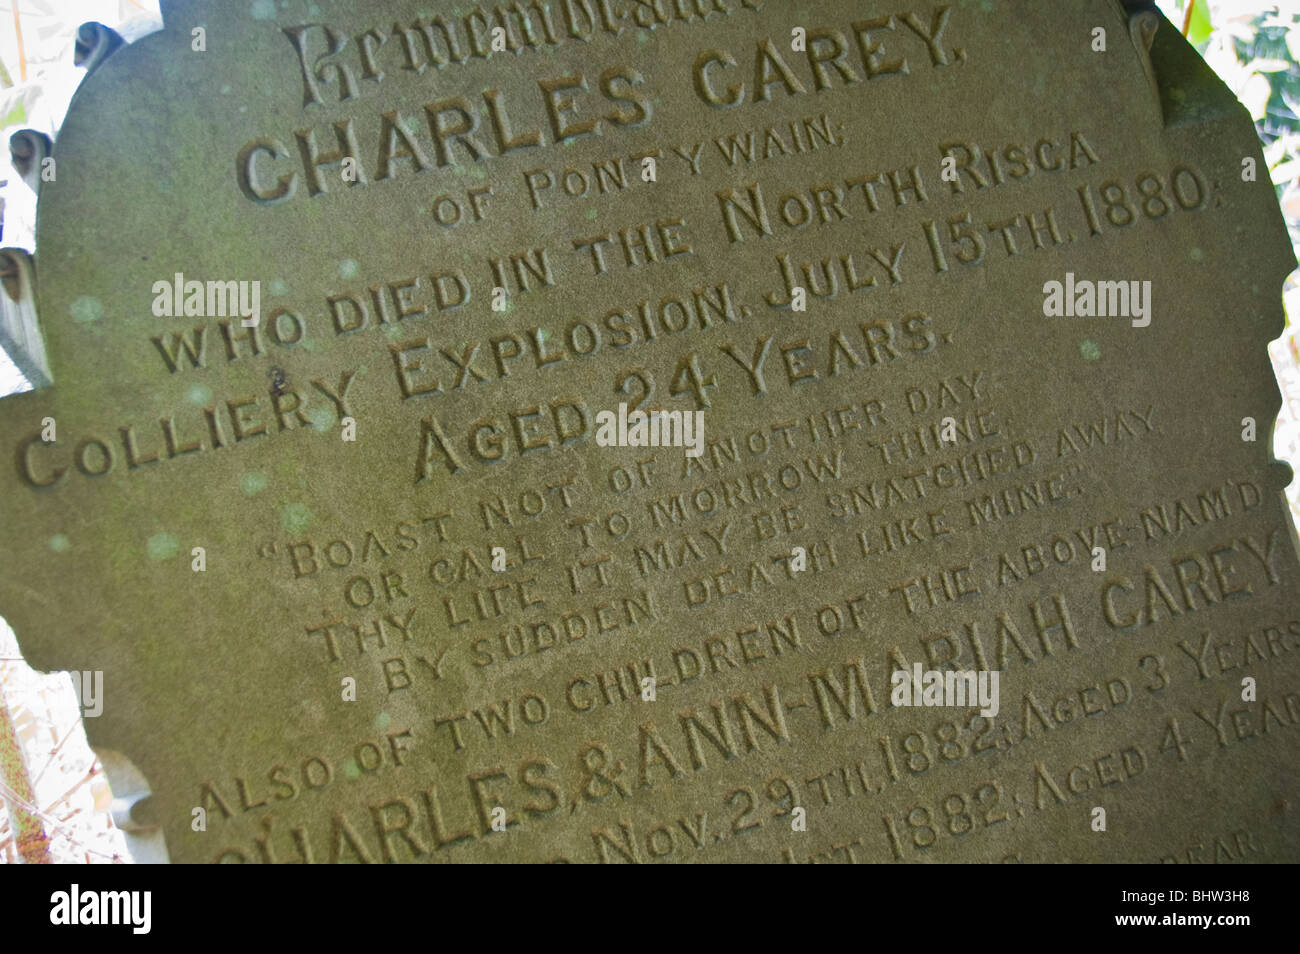 Gravestone of miner aged 24 killed in the North Risca Colliery explosion 15th July 1880 Cwmcarn South Wales Valleys - Stock Image